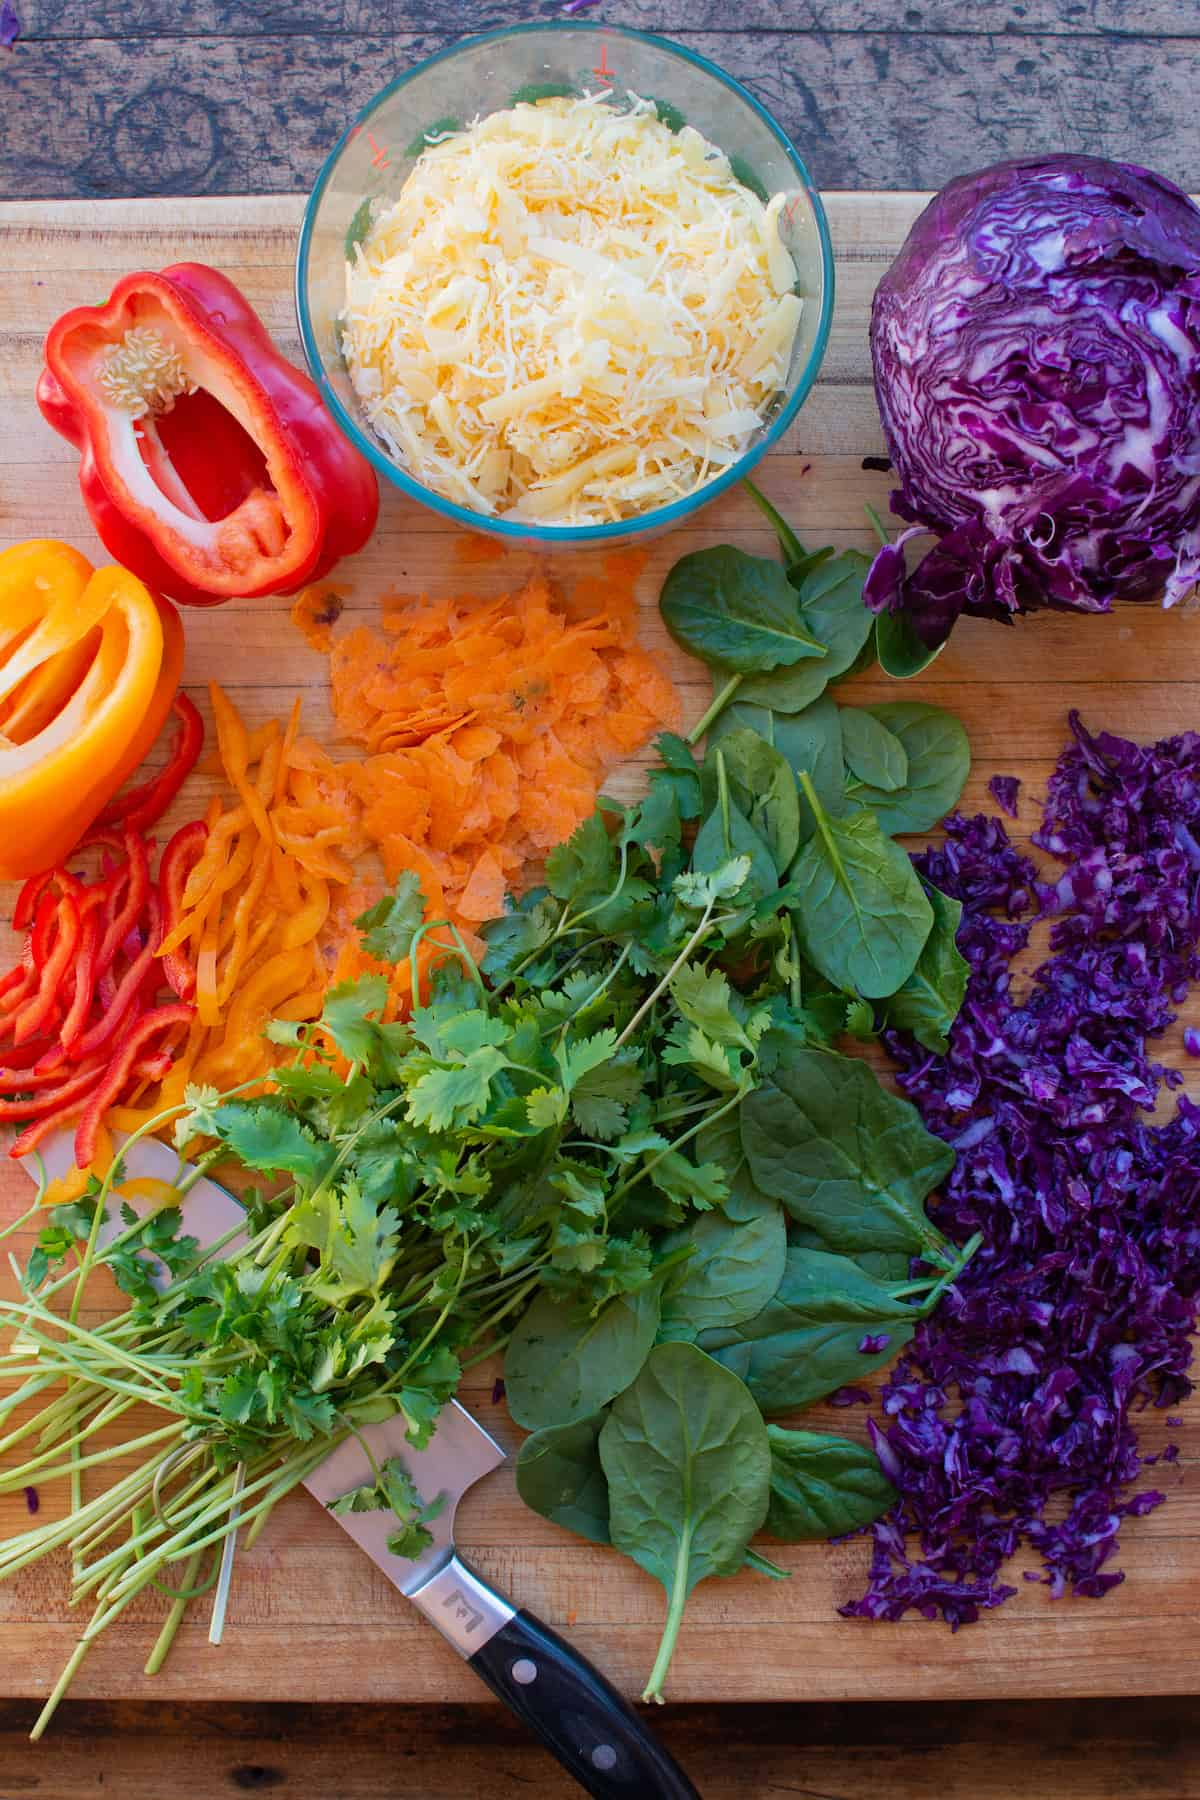 Overhead image of ingredients needed to make veggie quesadillas. Chopped red bell pepper, orange bell peppers, carrots, cilantro, and spinach.